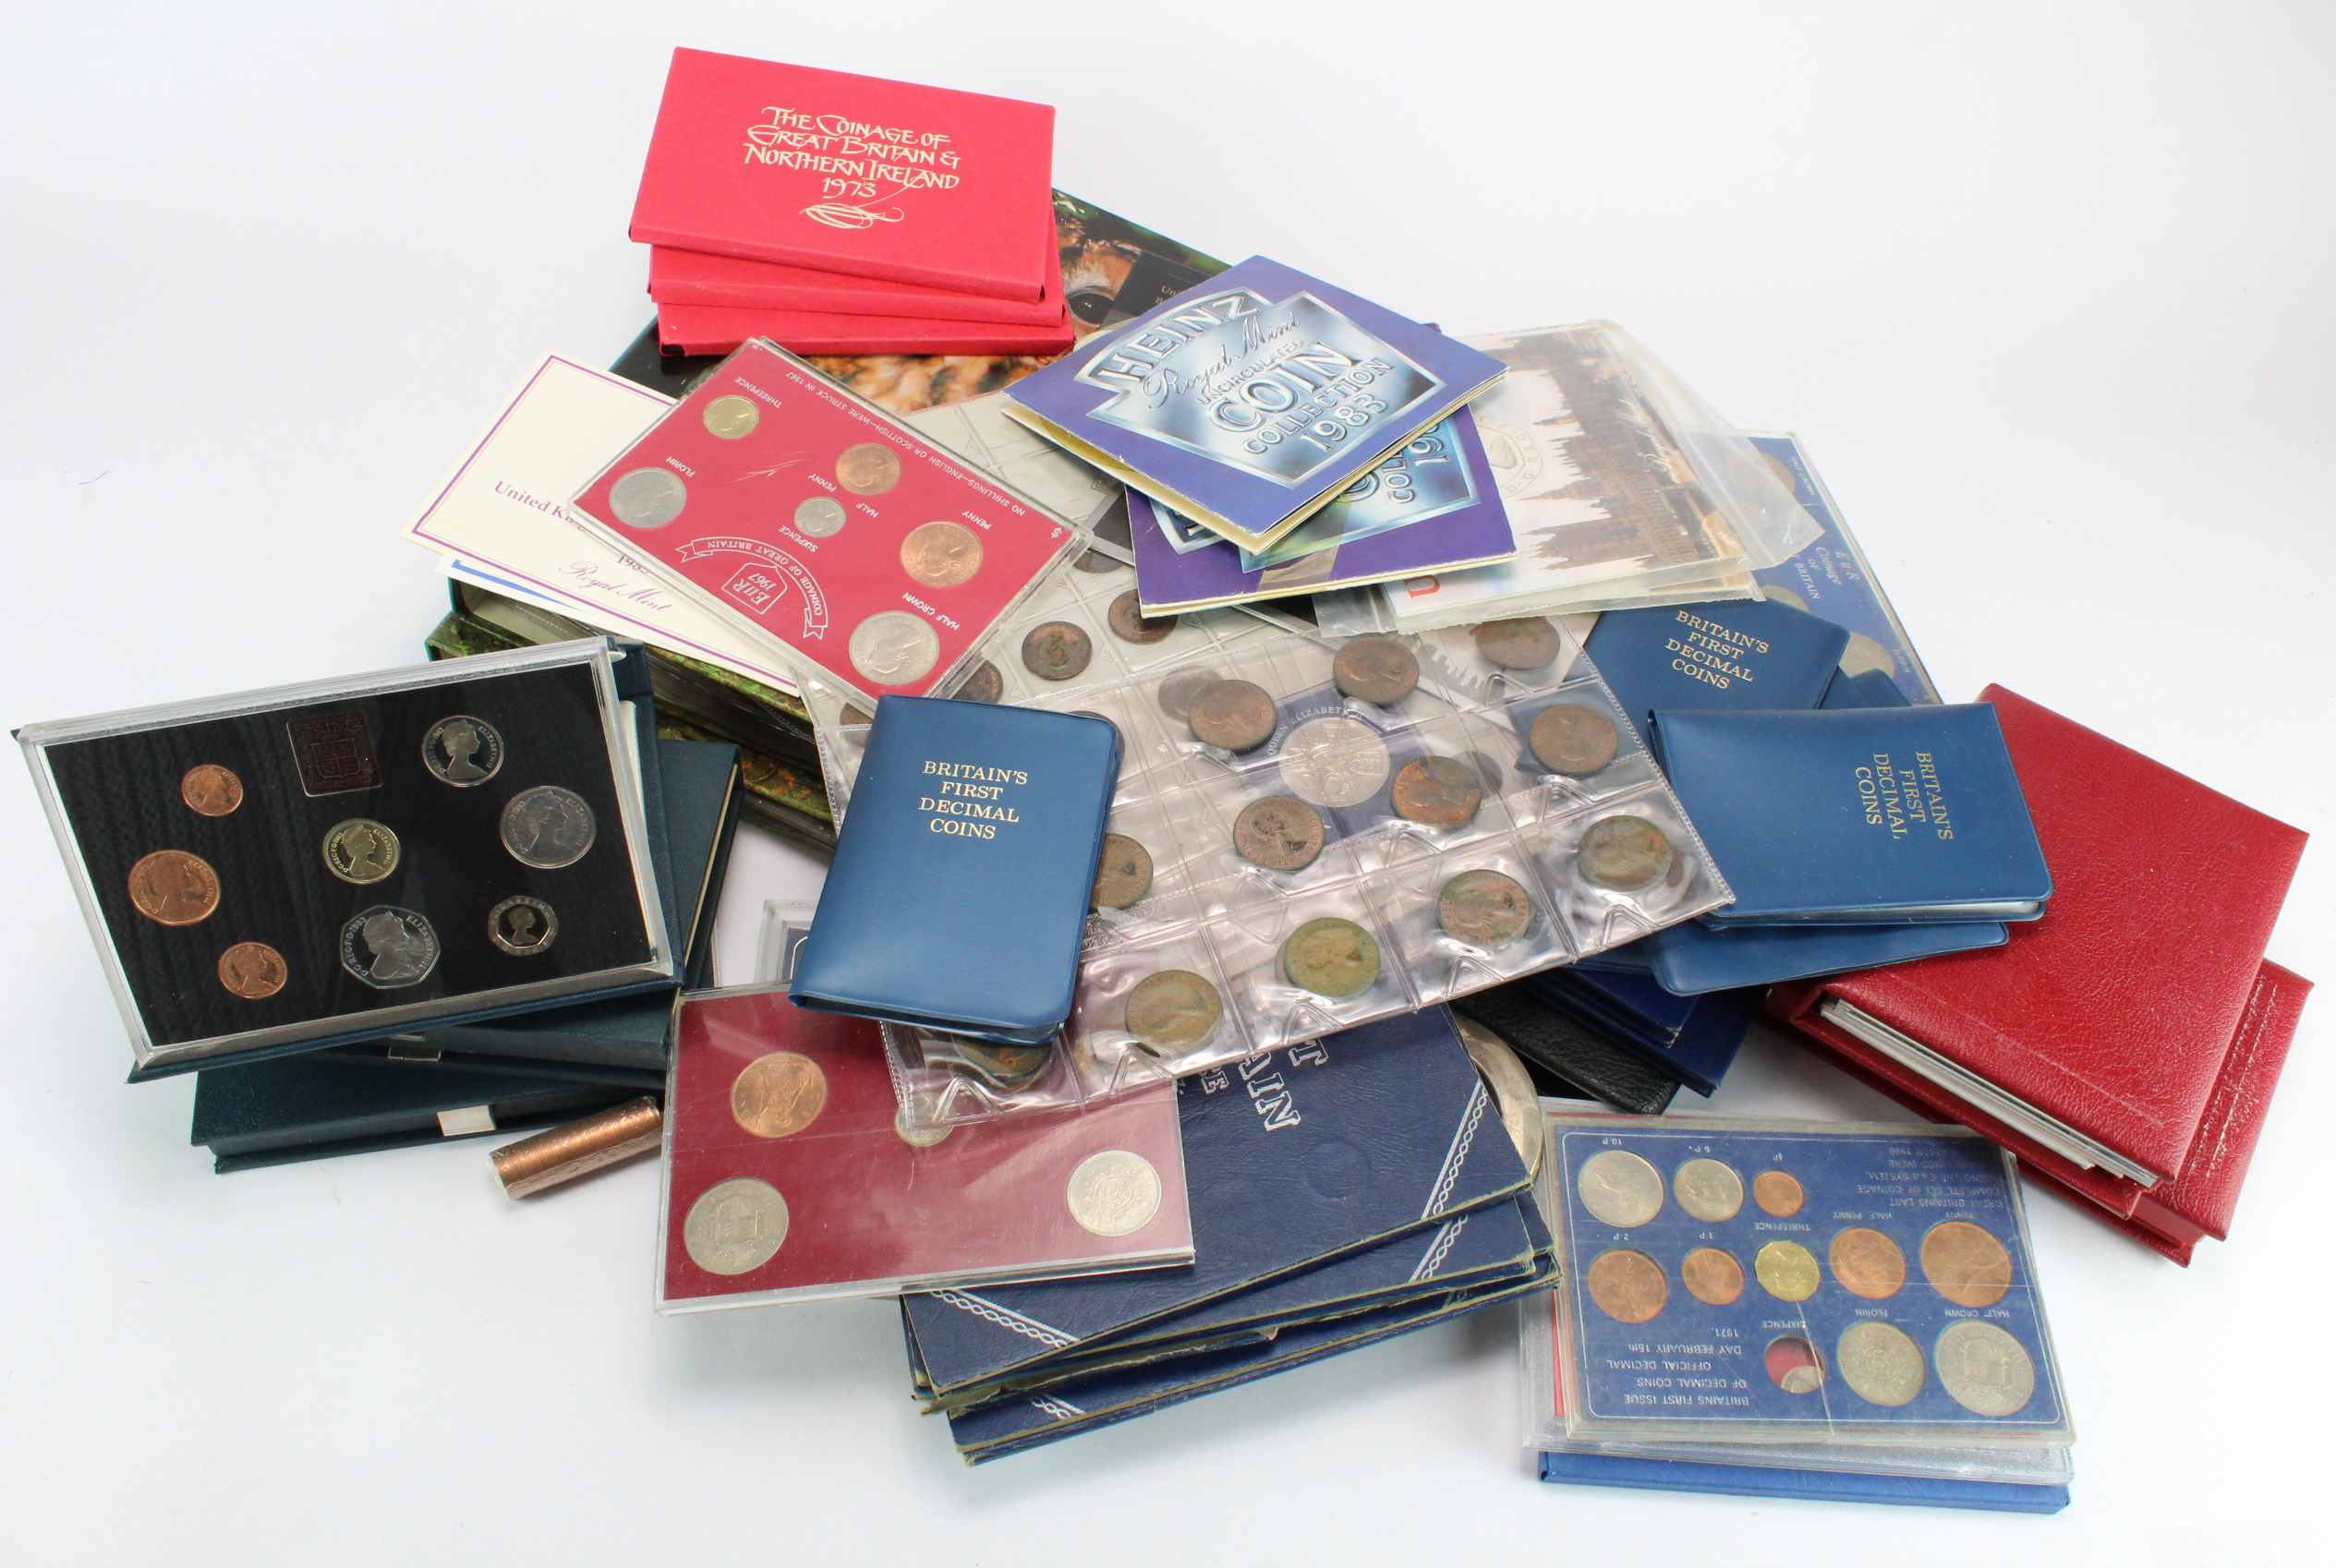 Assortment of mainly GB in a stacker box. Includes Proof sets, Whitman folders, album pages etc,